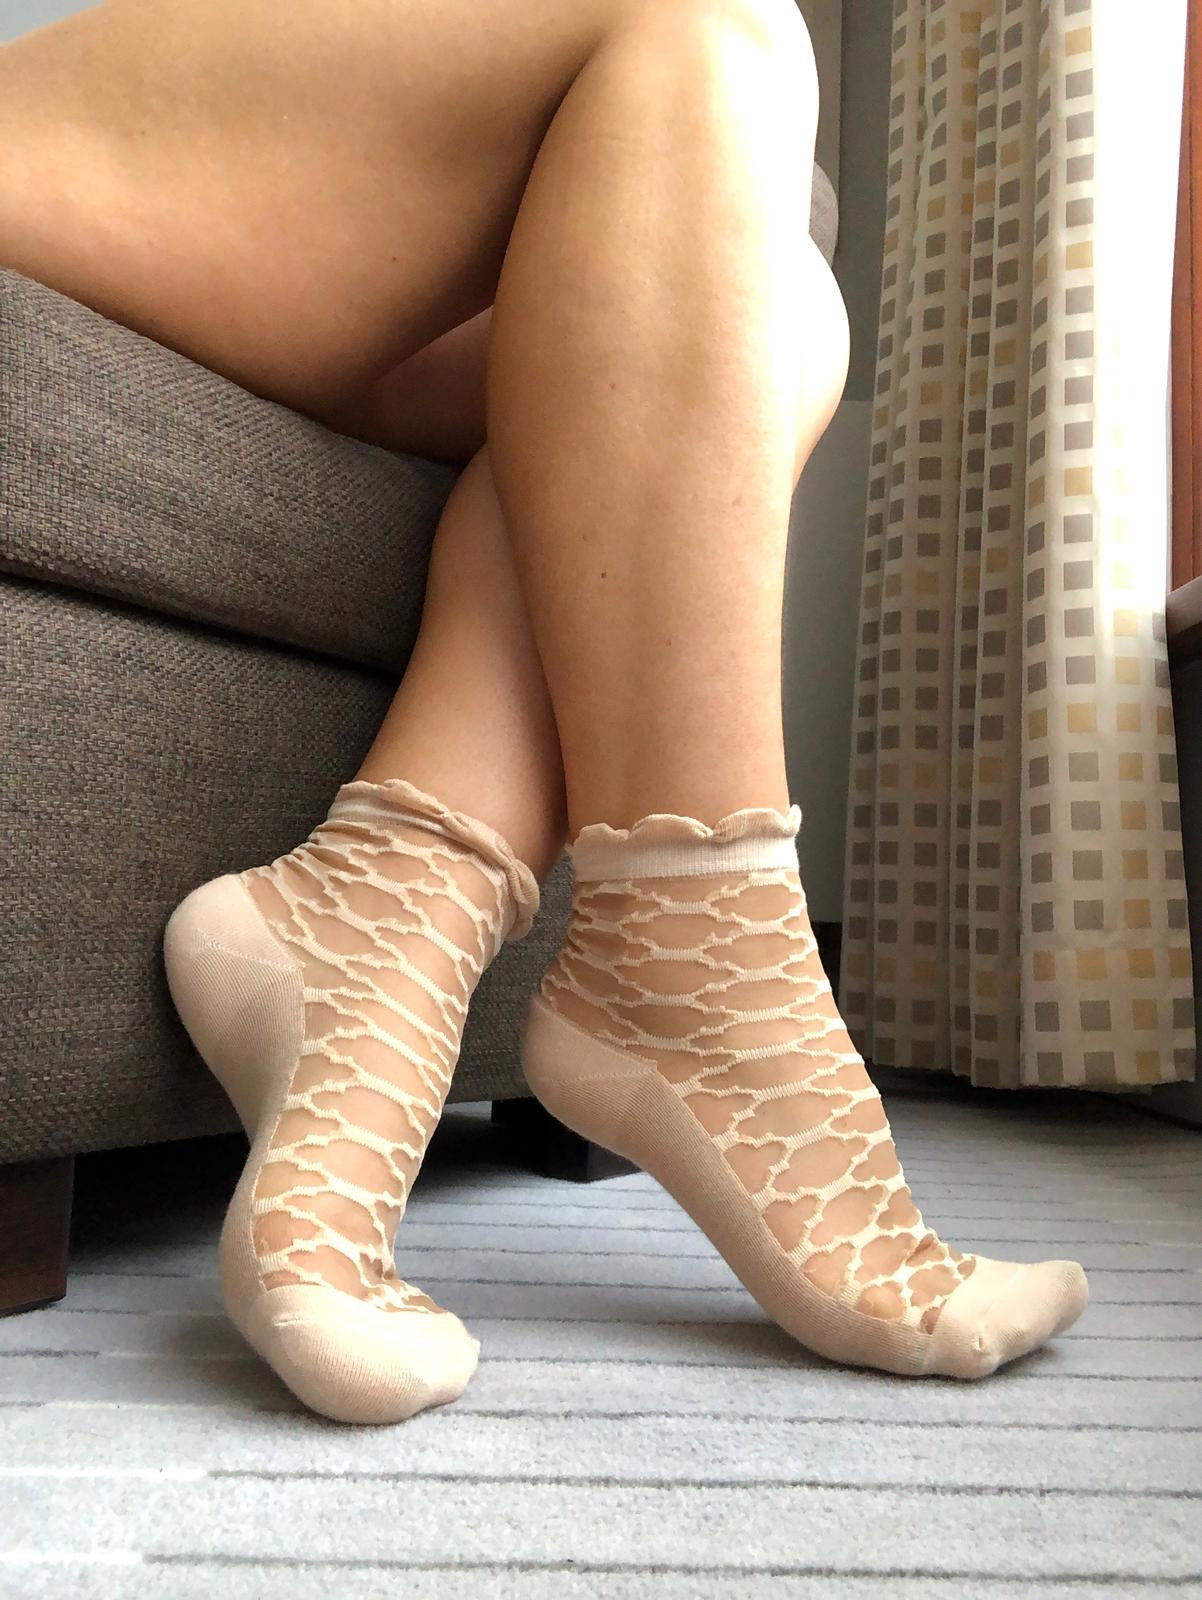 Pentagon Beige Sheer Socks - Global Trendz Fashion®